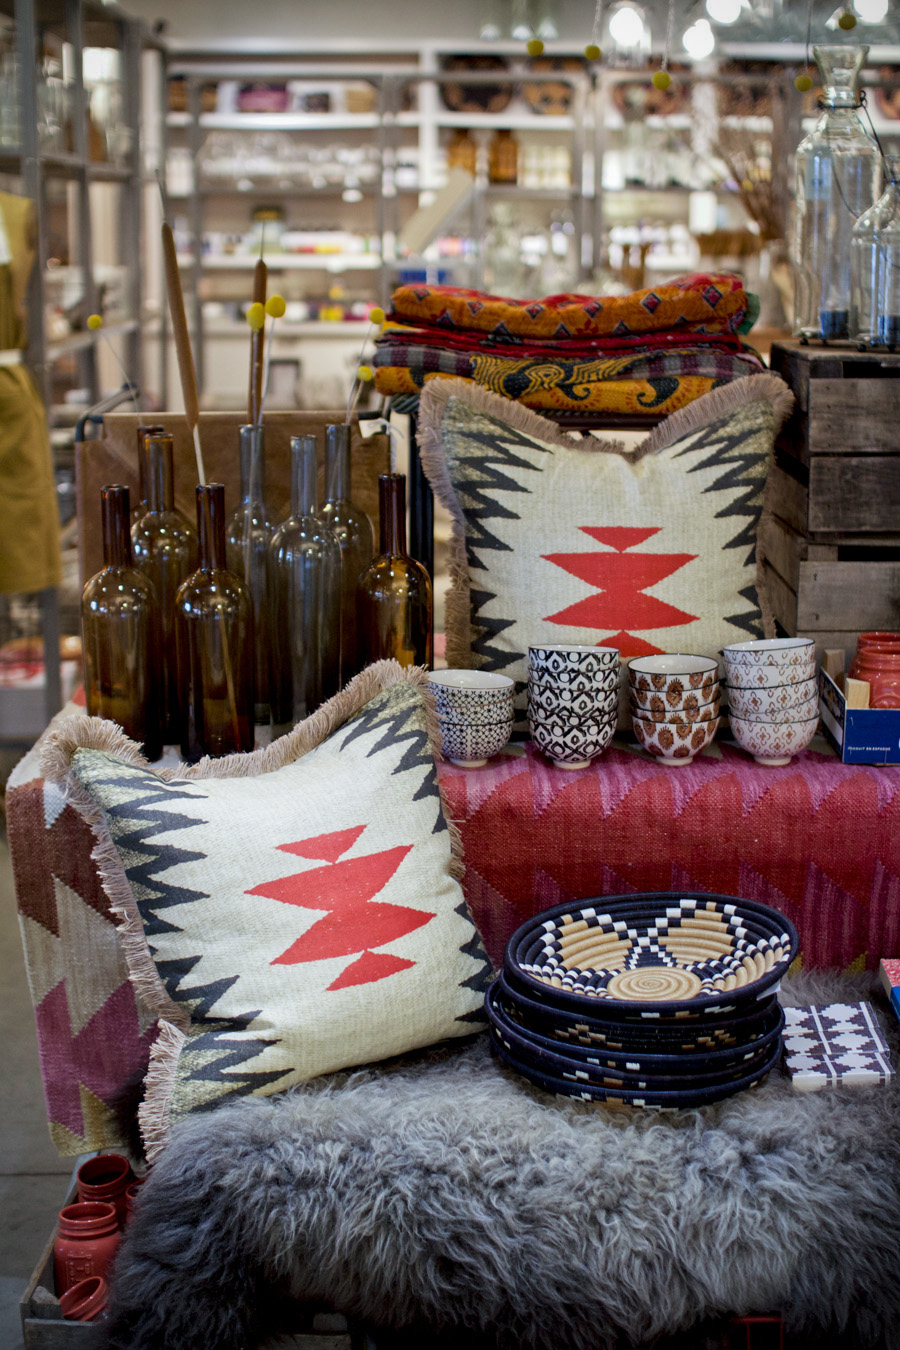 I love the tribal/aztec vibe of these pillows and the pretty pinks and reds in the rug behind it.